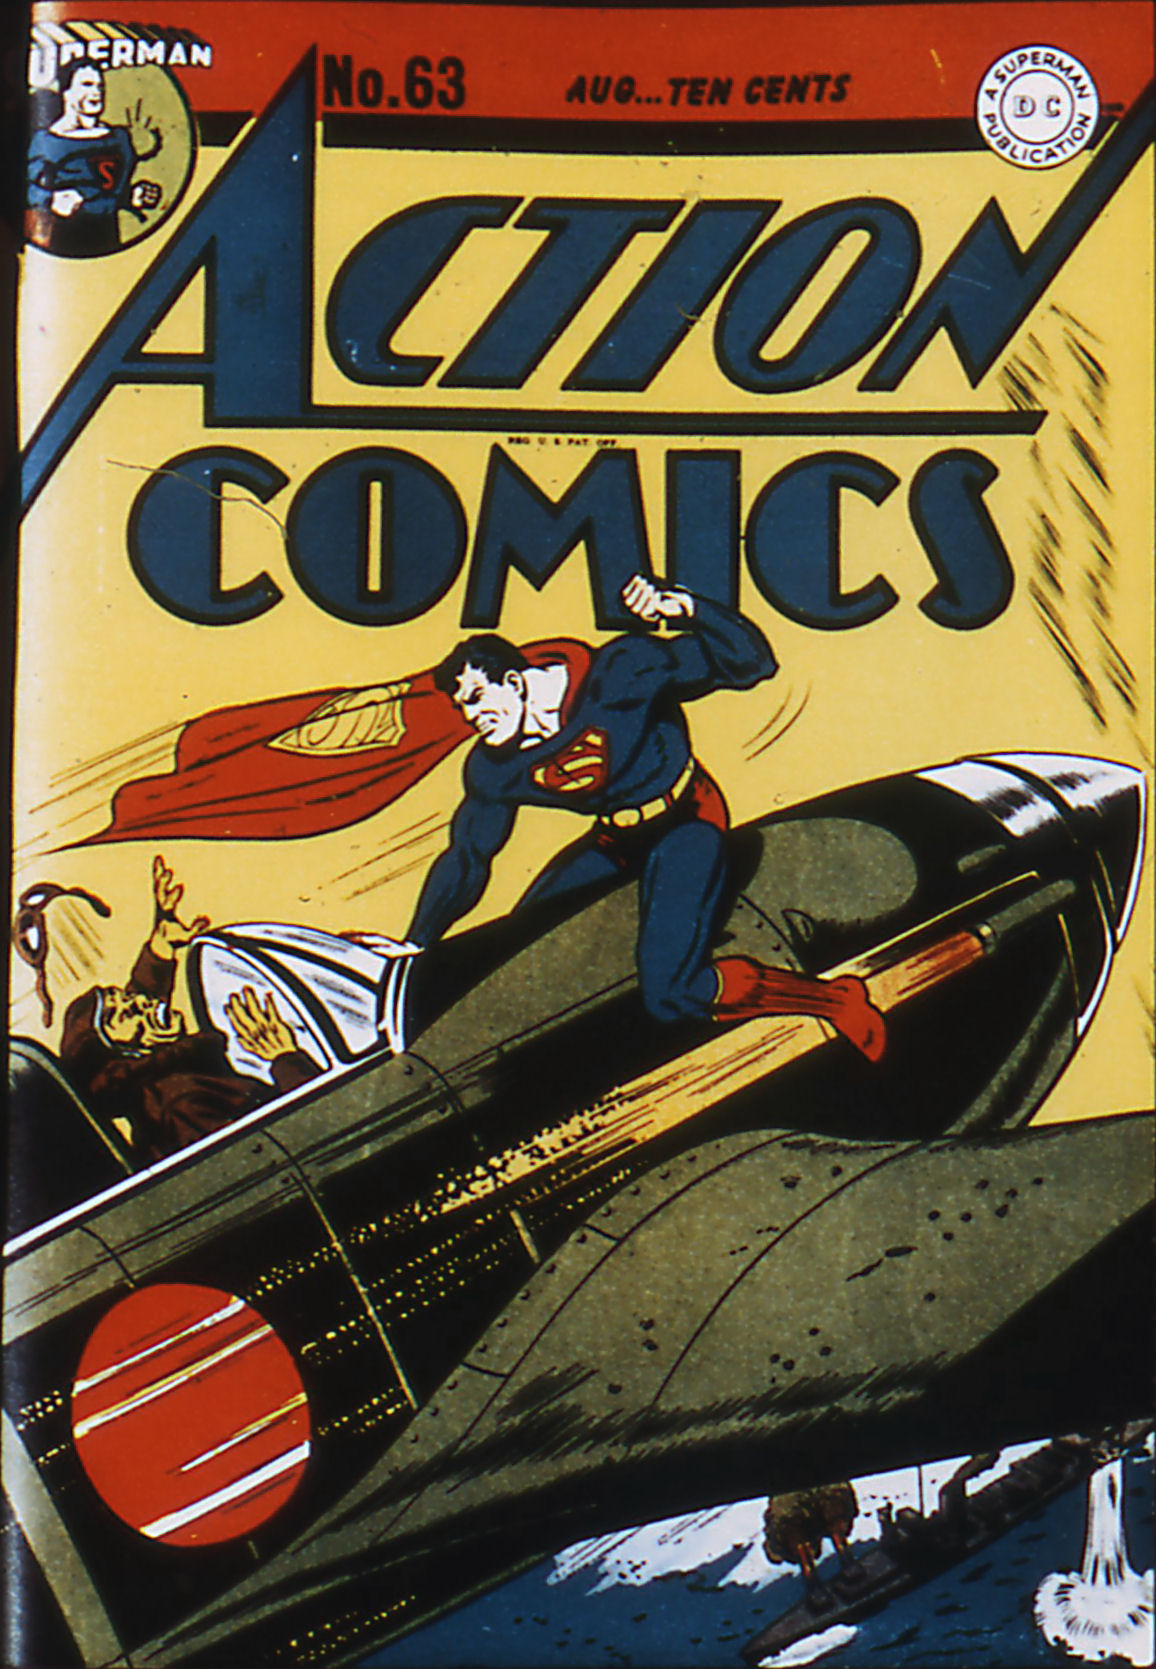 Read online Action Comics (1938) comic -  Issue #63 - 1